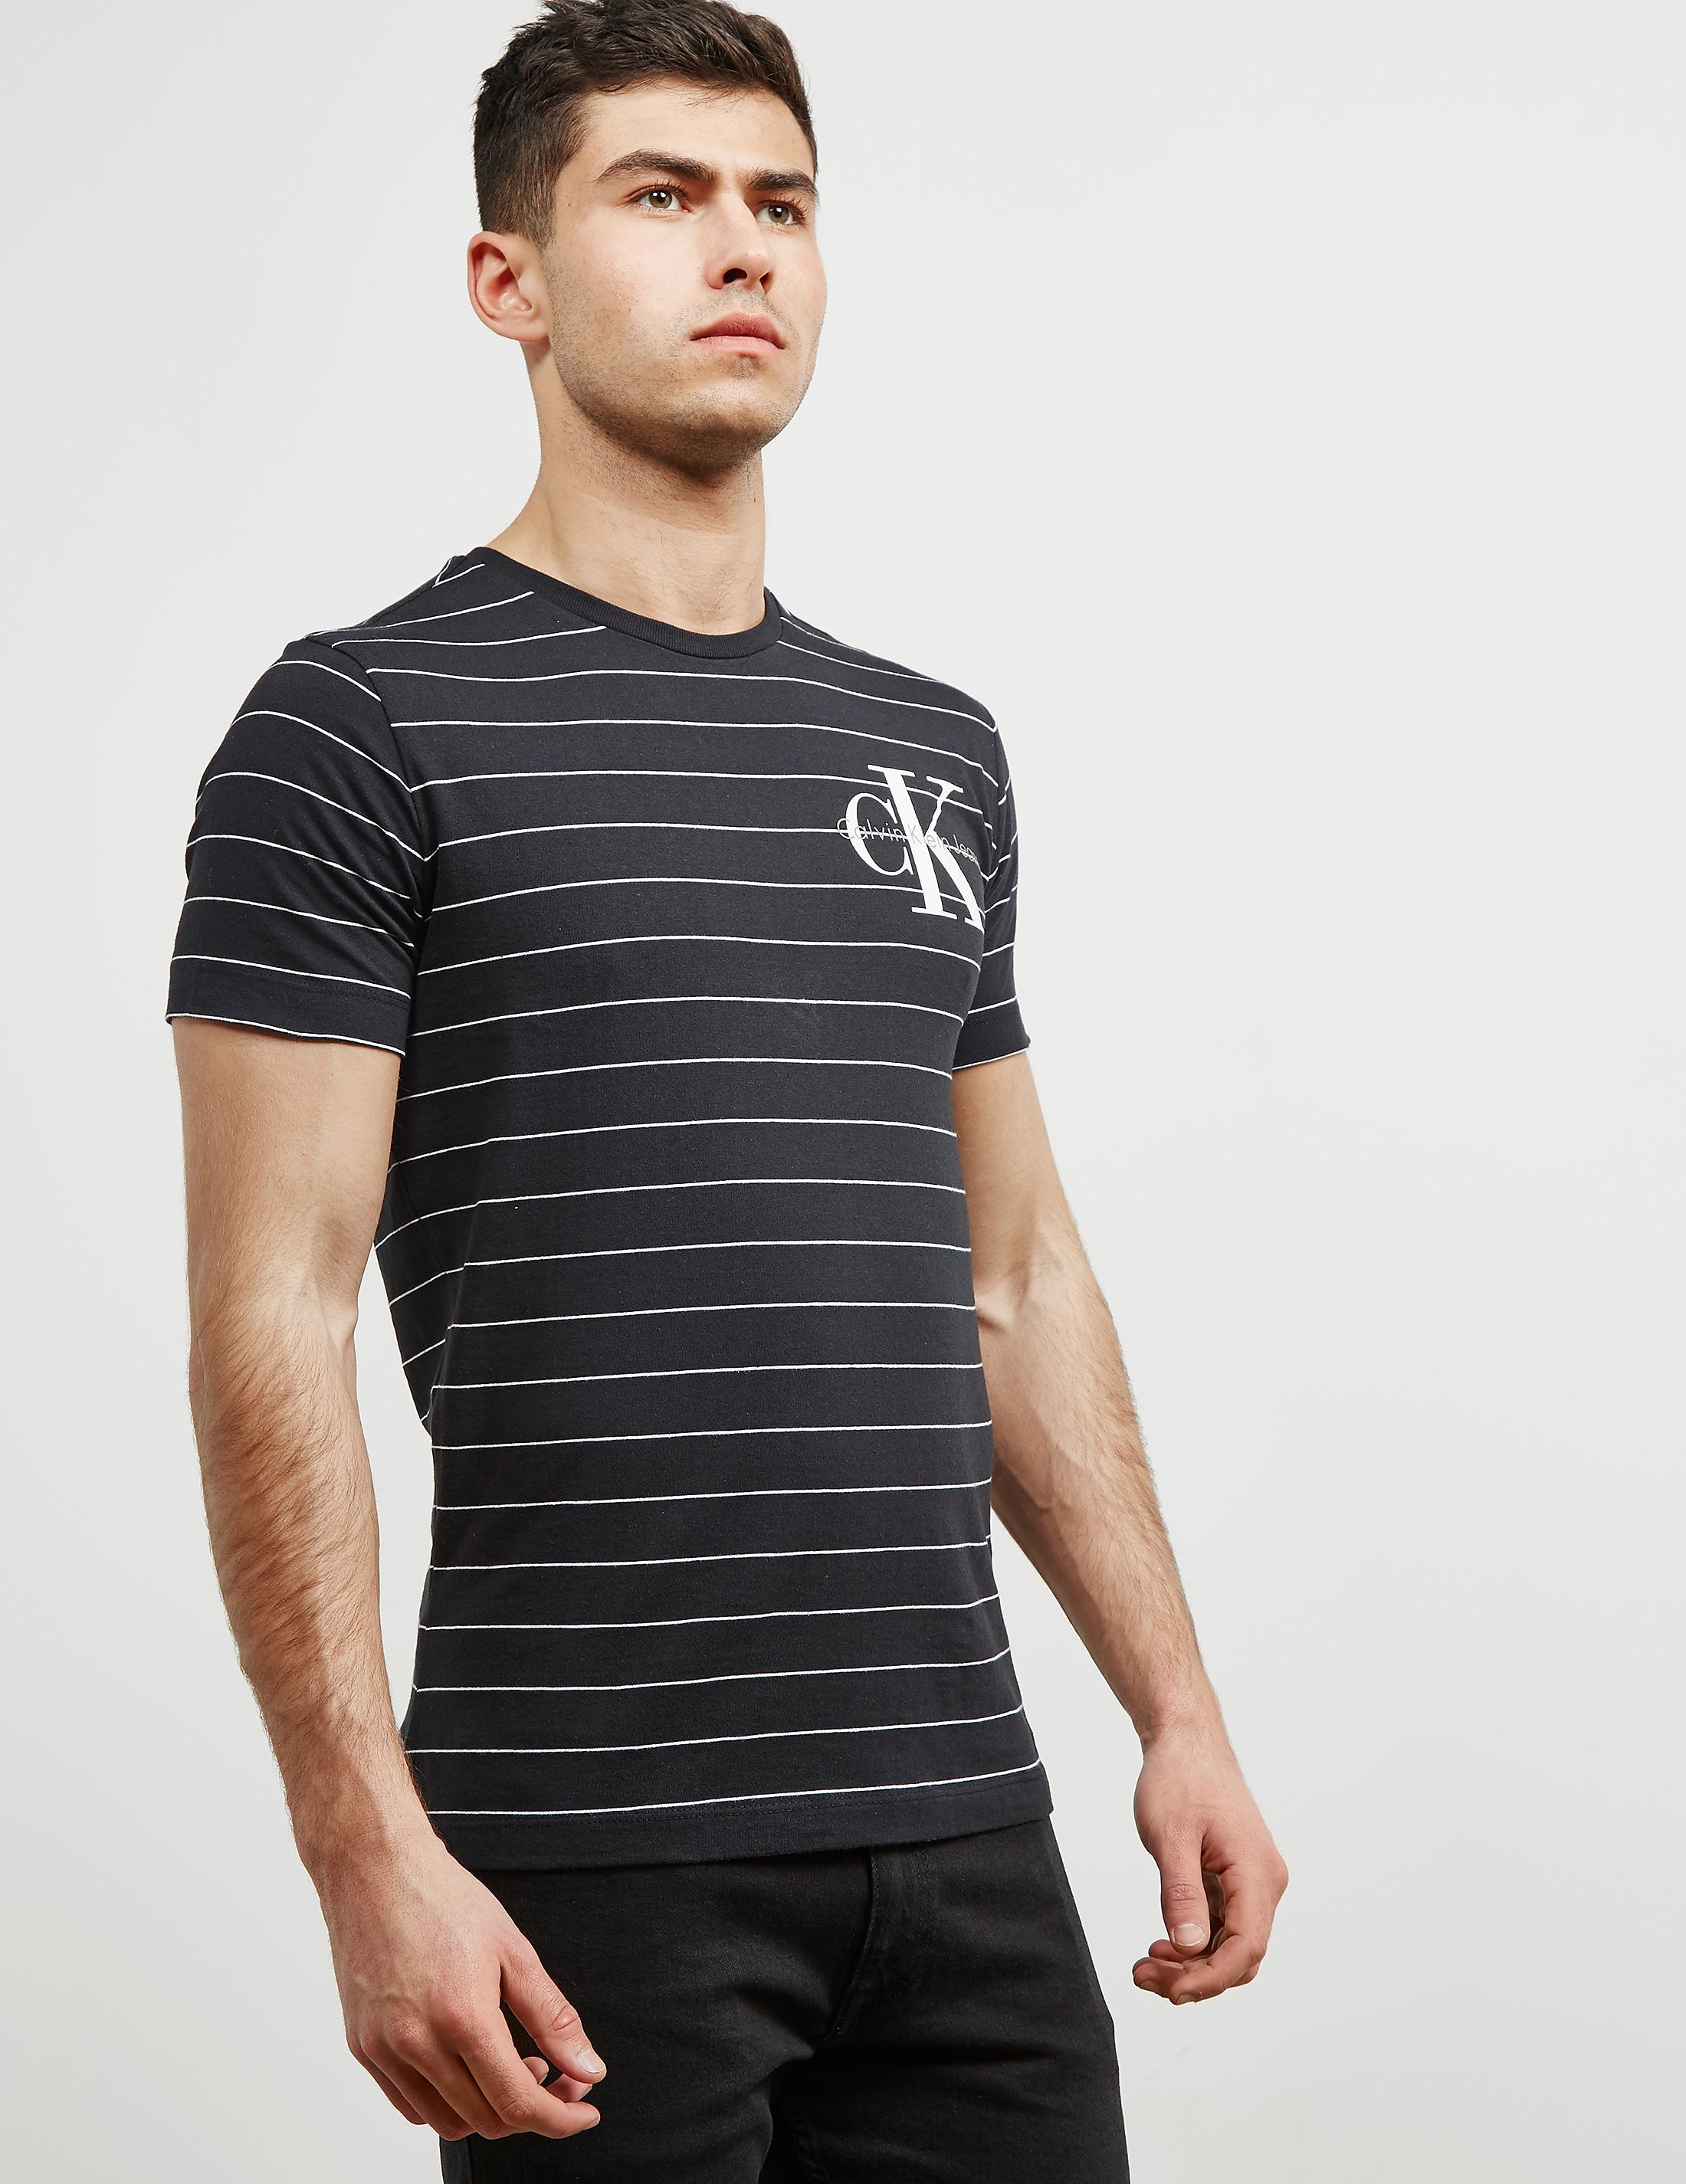 Calvin Klein Stripe Crew Short Sleeve T-Shirt